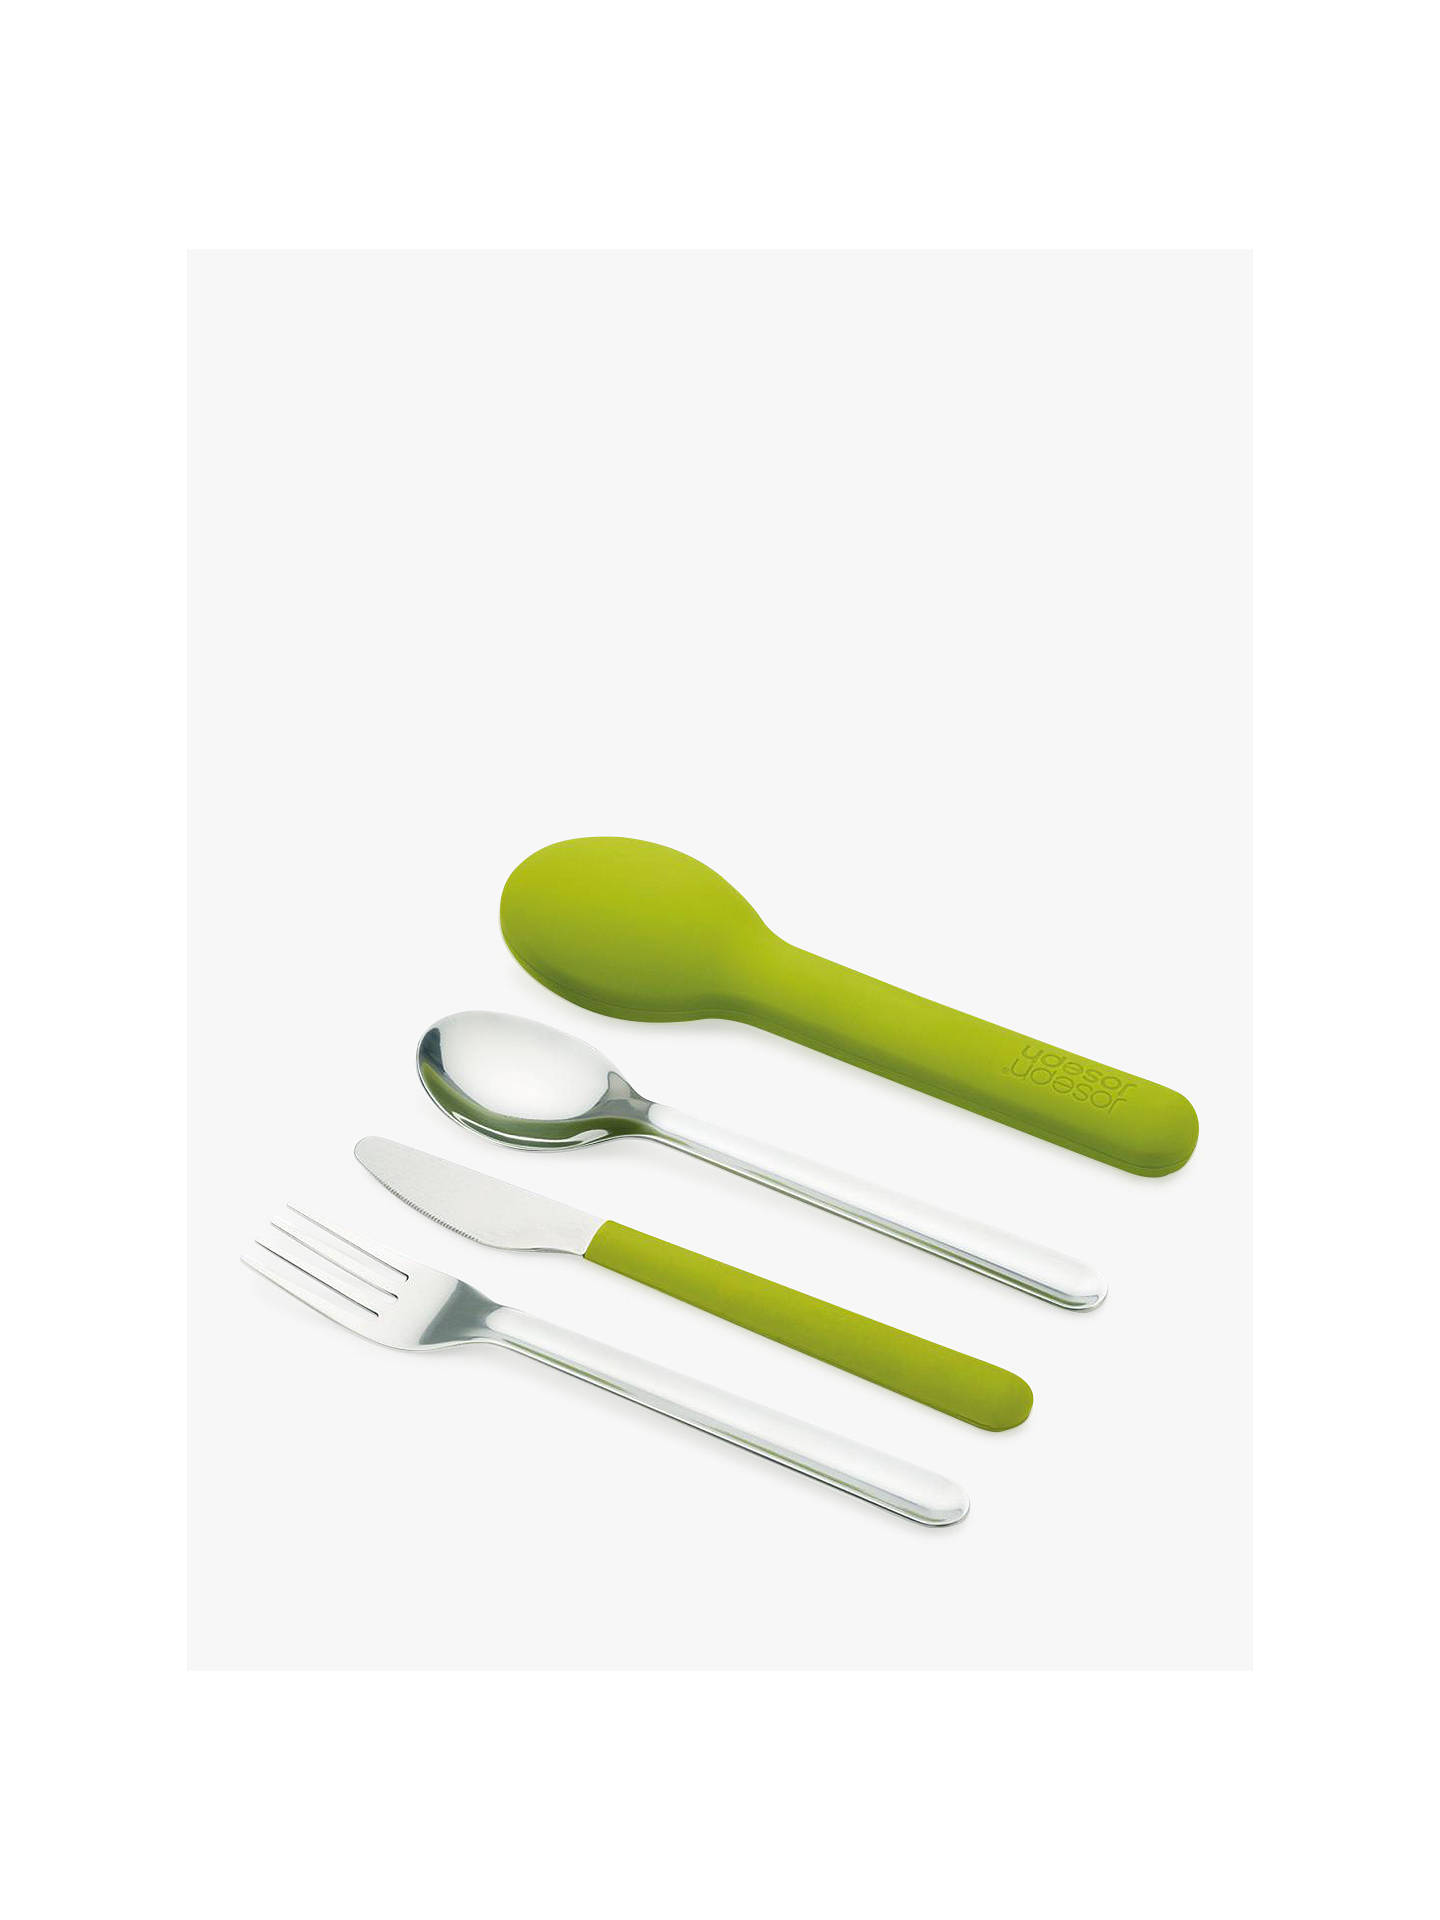 BuyJoseph Joseph GoEat Compact Portable Stainless Steel Cutlery Set, Green Online at johnlewis.com